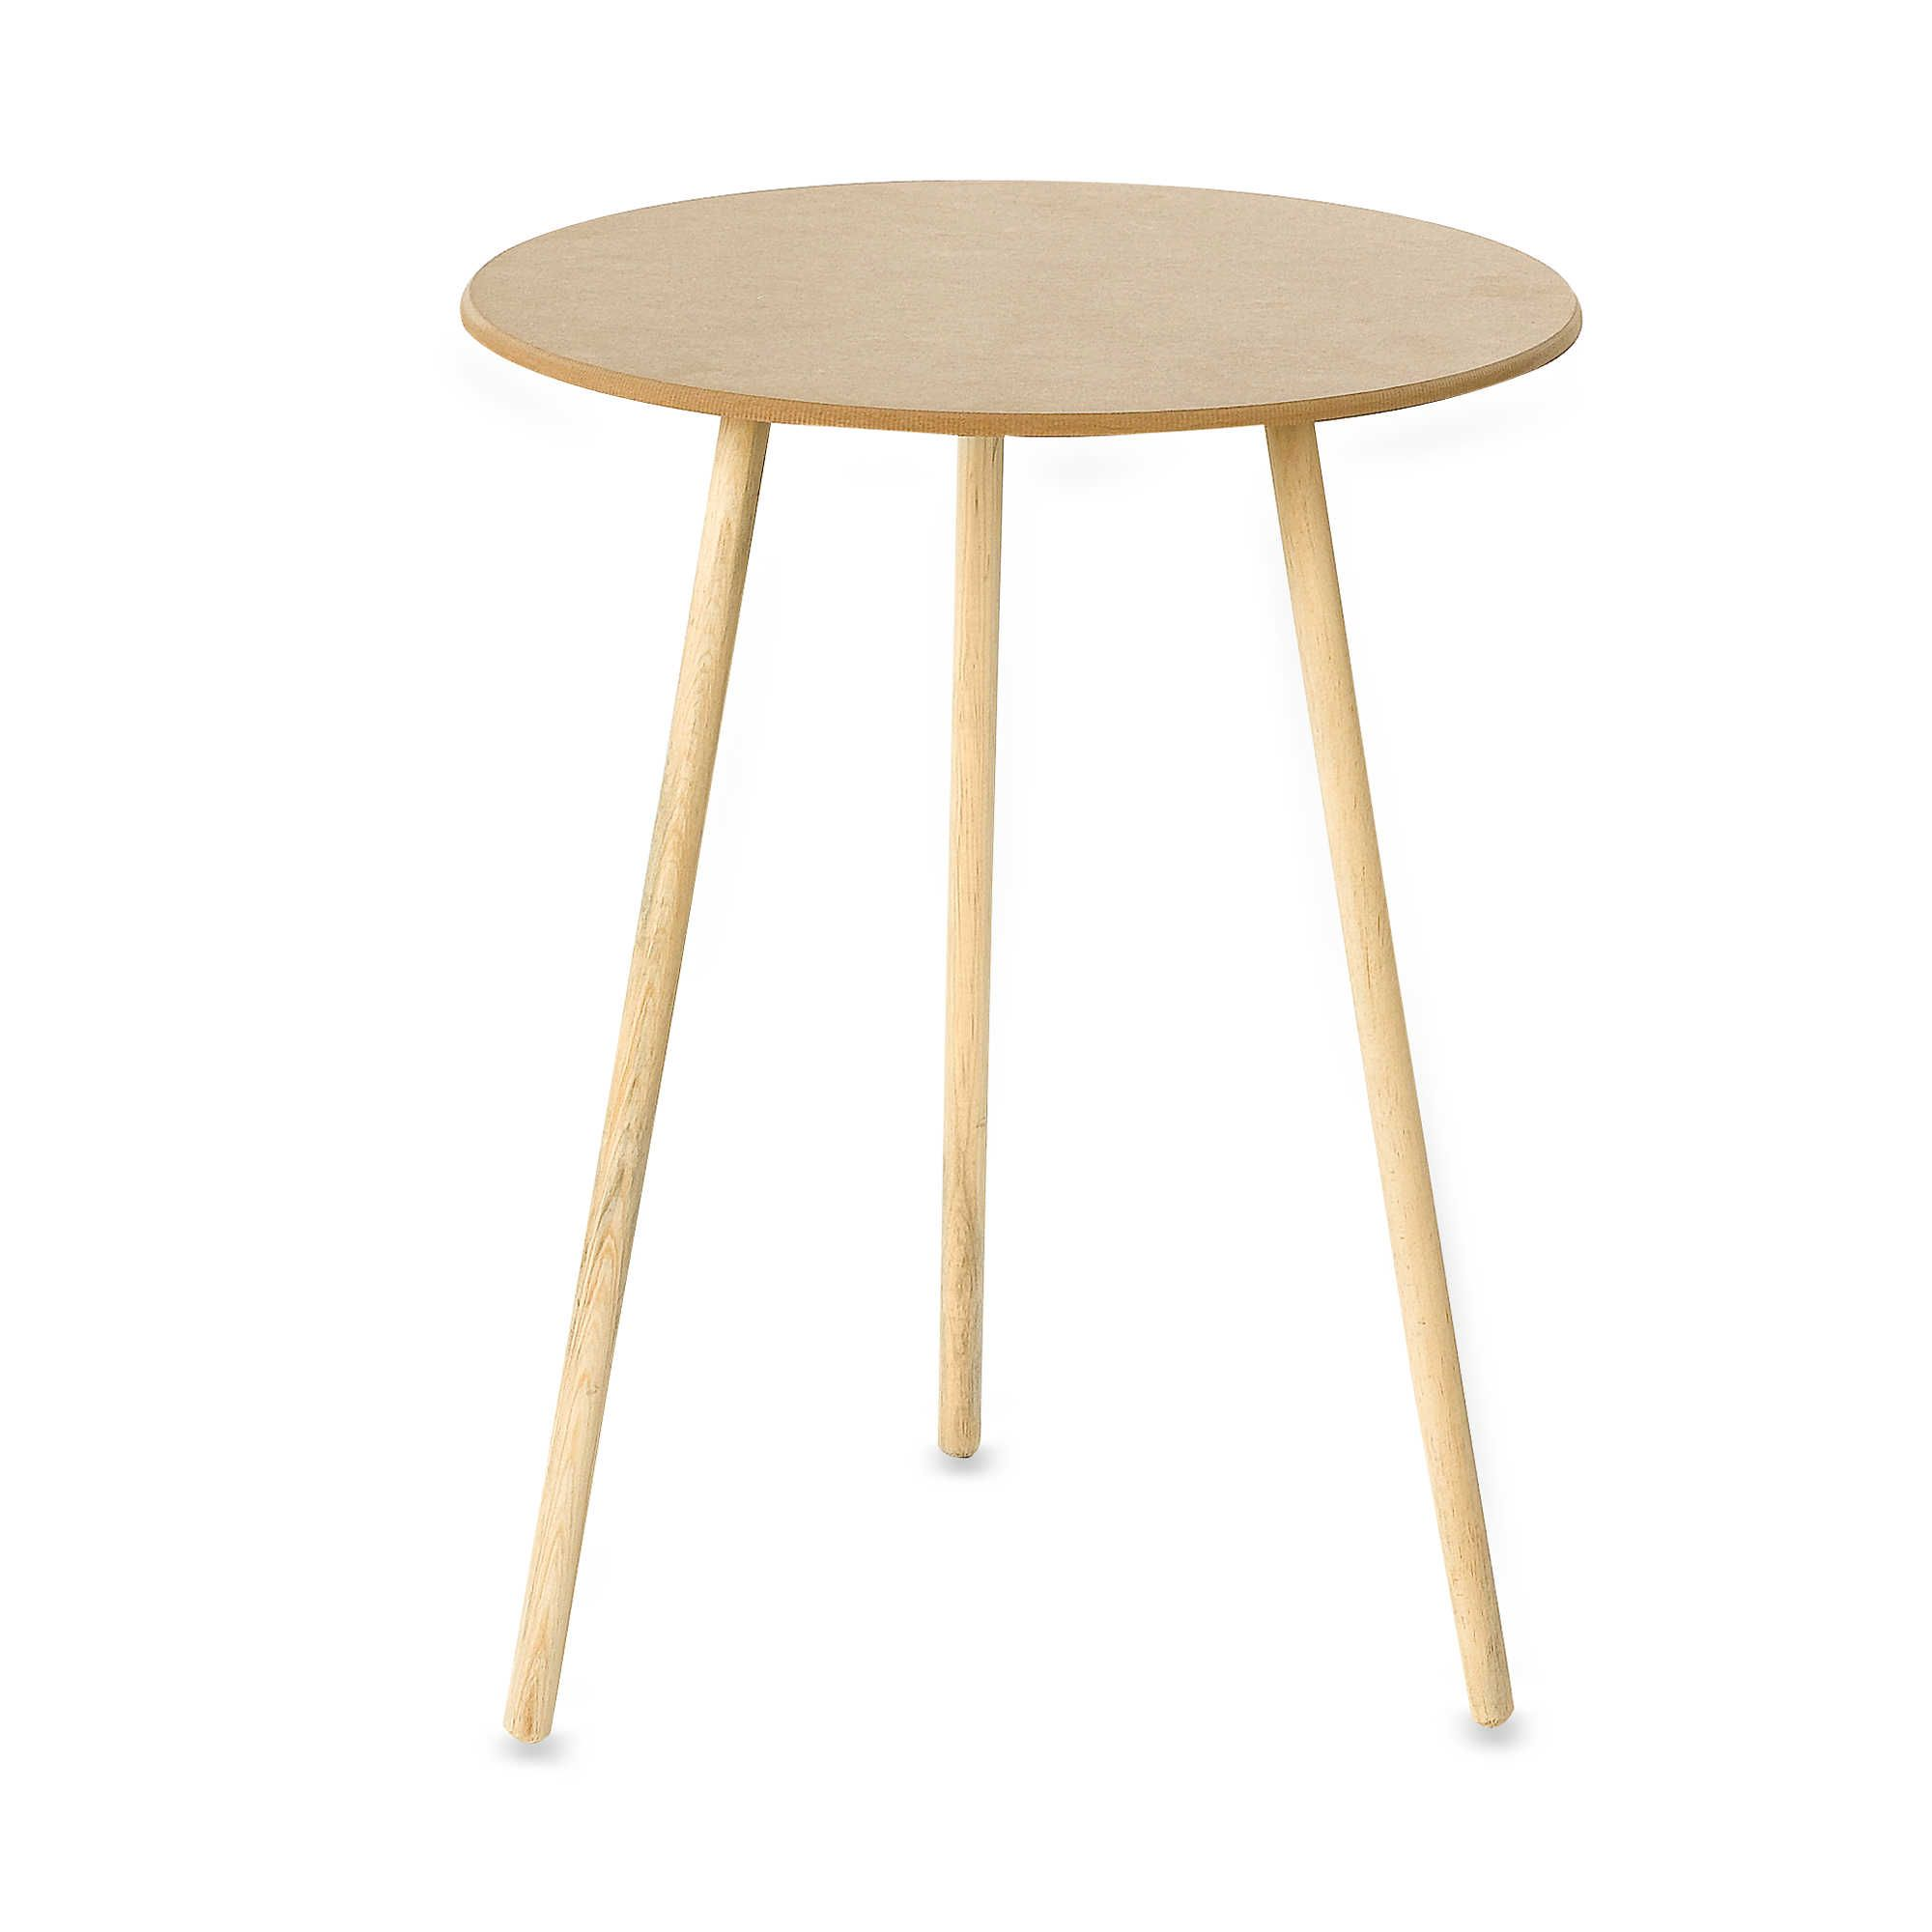 20 Inch Round Decorator Table